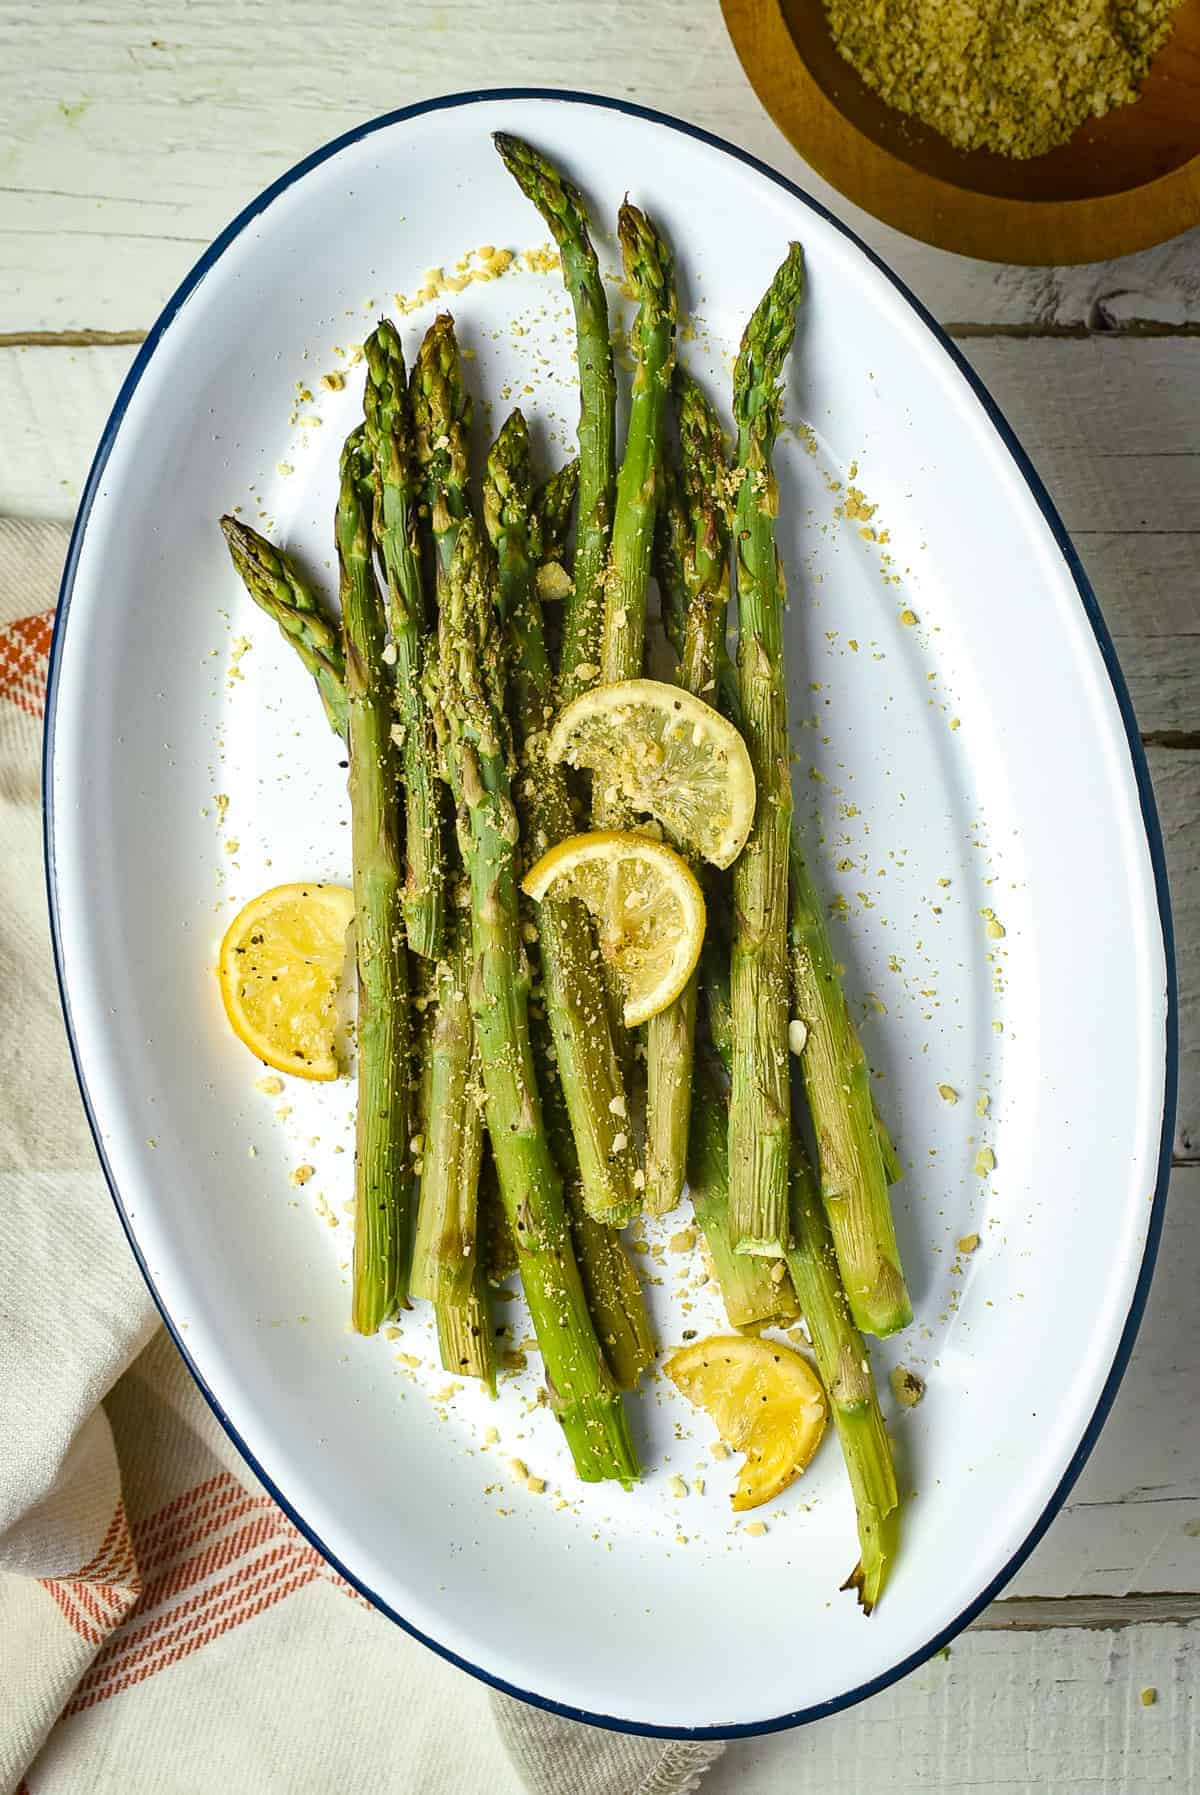 Easy roasted asparagus on platter with parmesan and lemon.